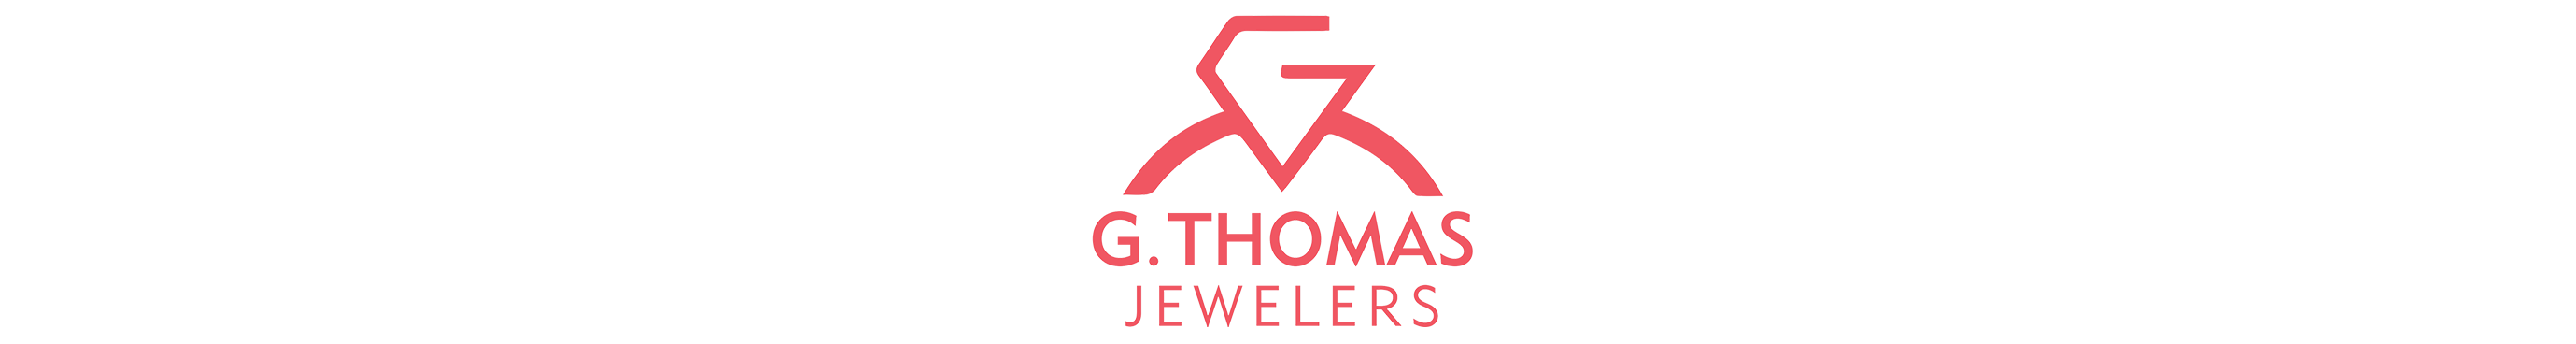 G Thomas Jewelers Logo